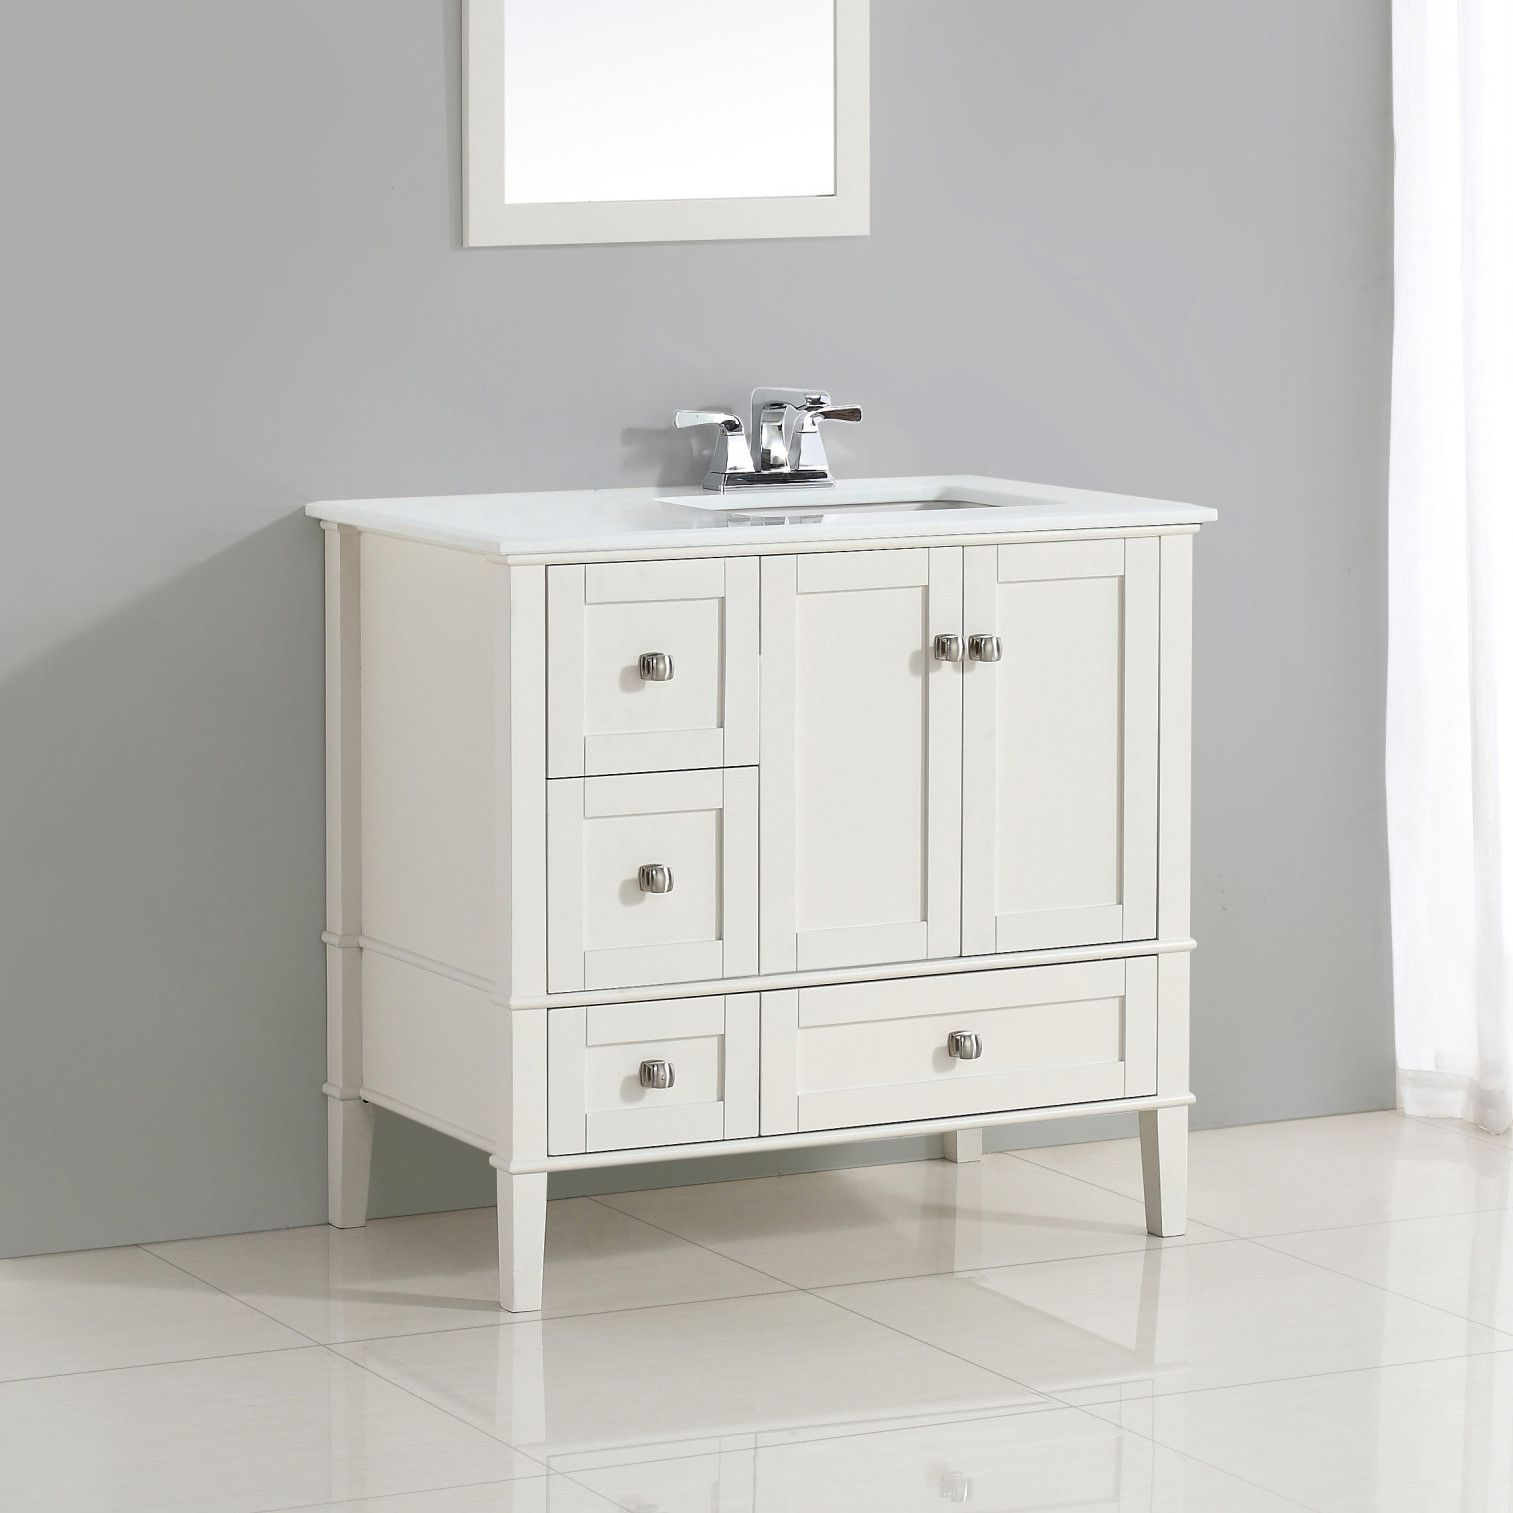 Simpli Home Chelsea 37 Single Right Offset Bath Vanity Set White Vanity Bathroom Single Bathroom Vanity Vanity